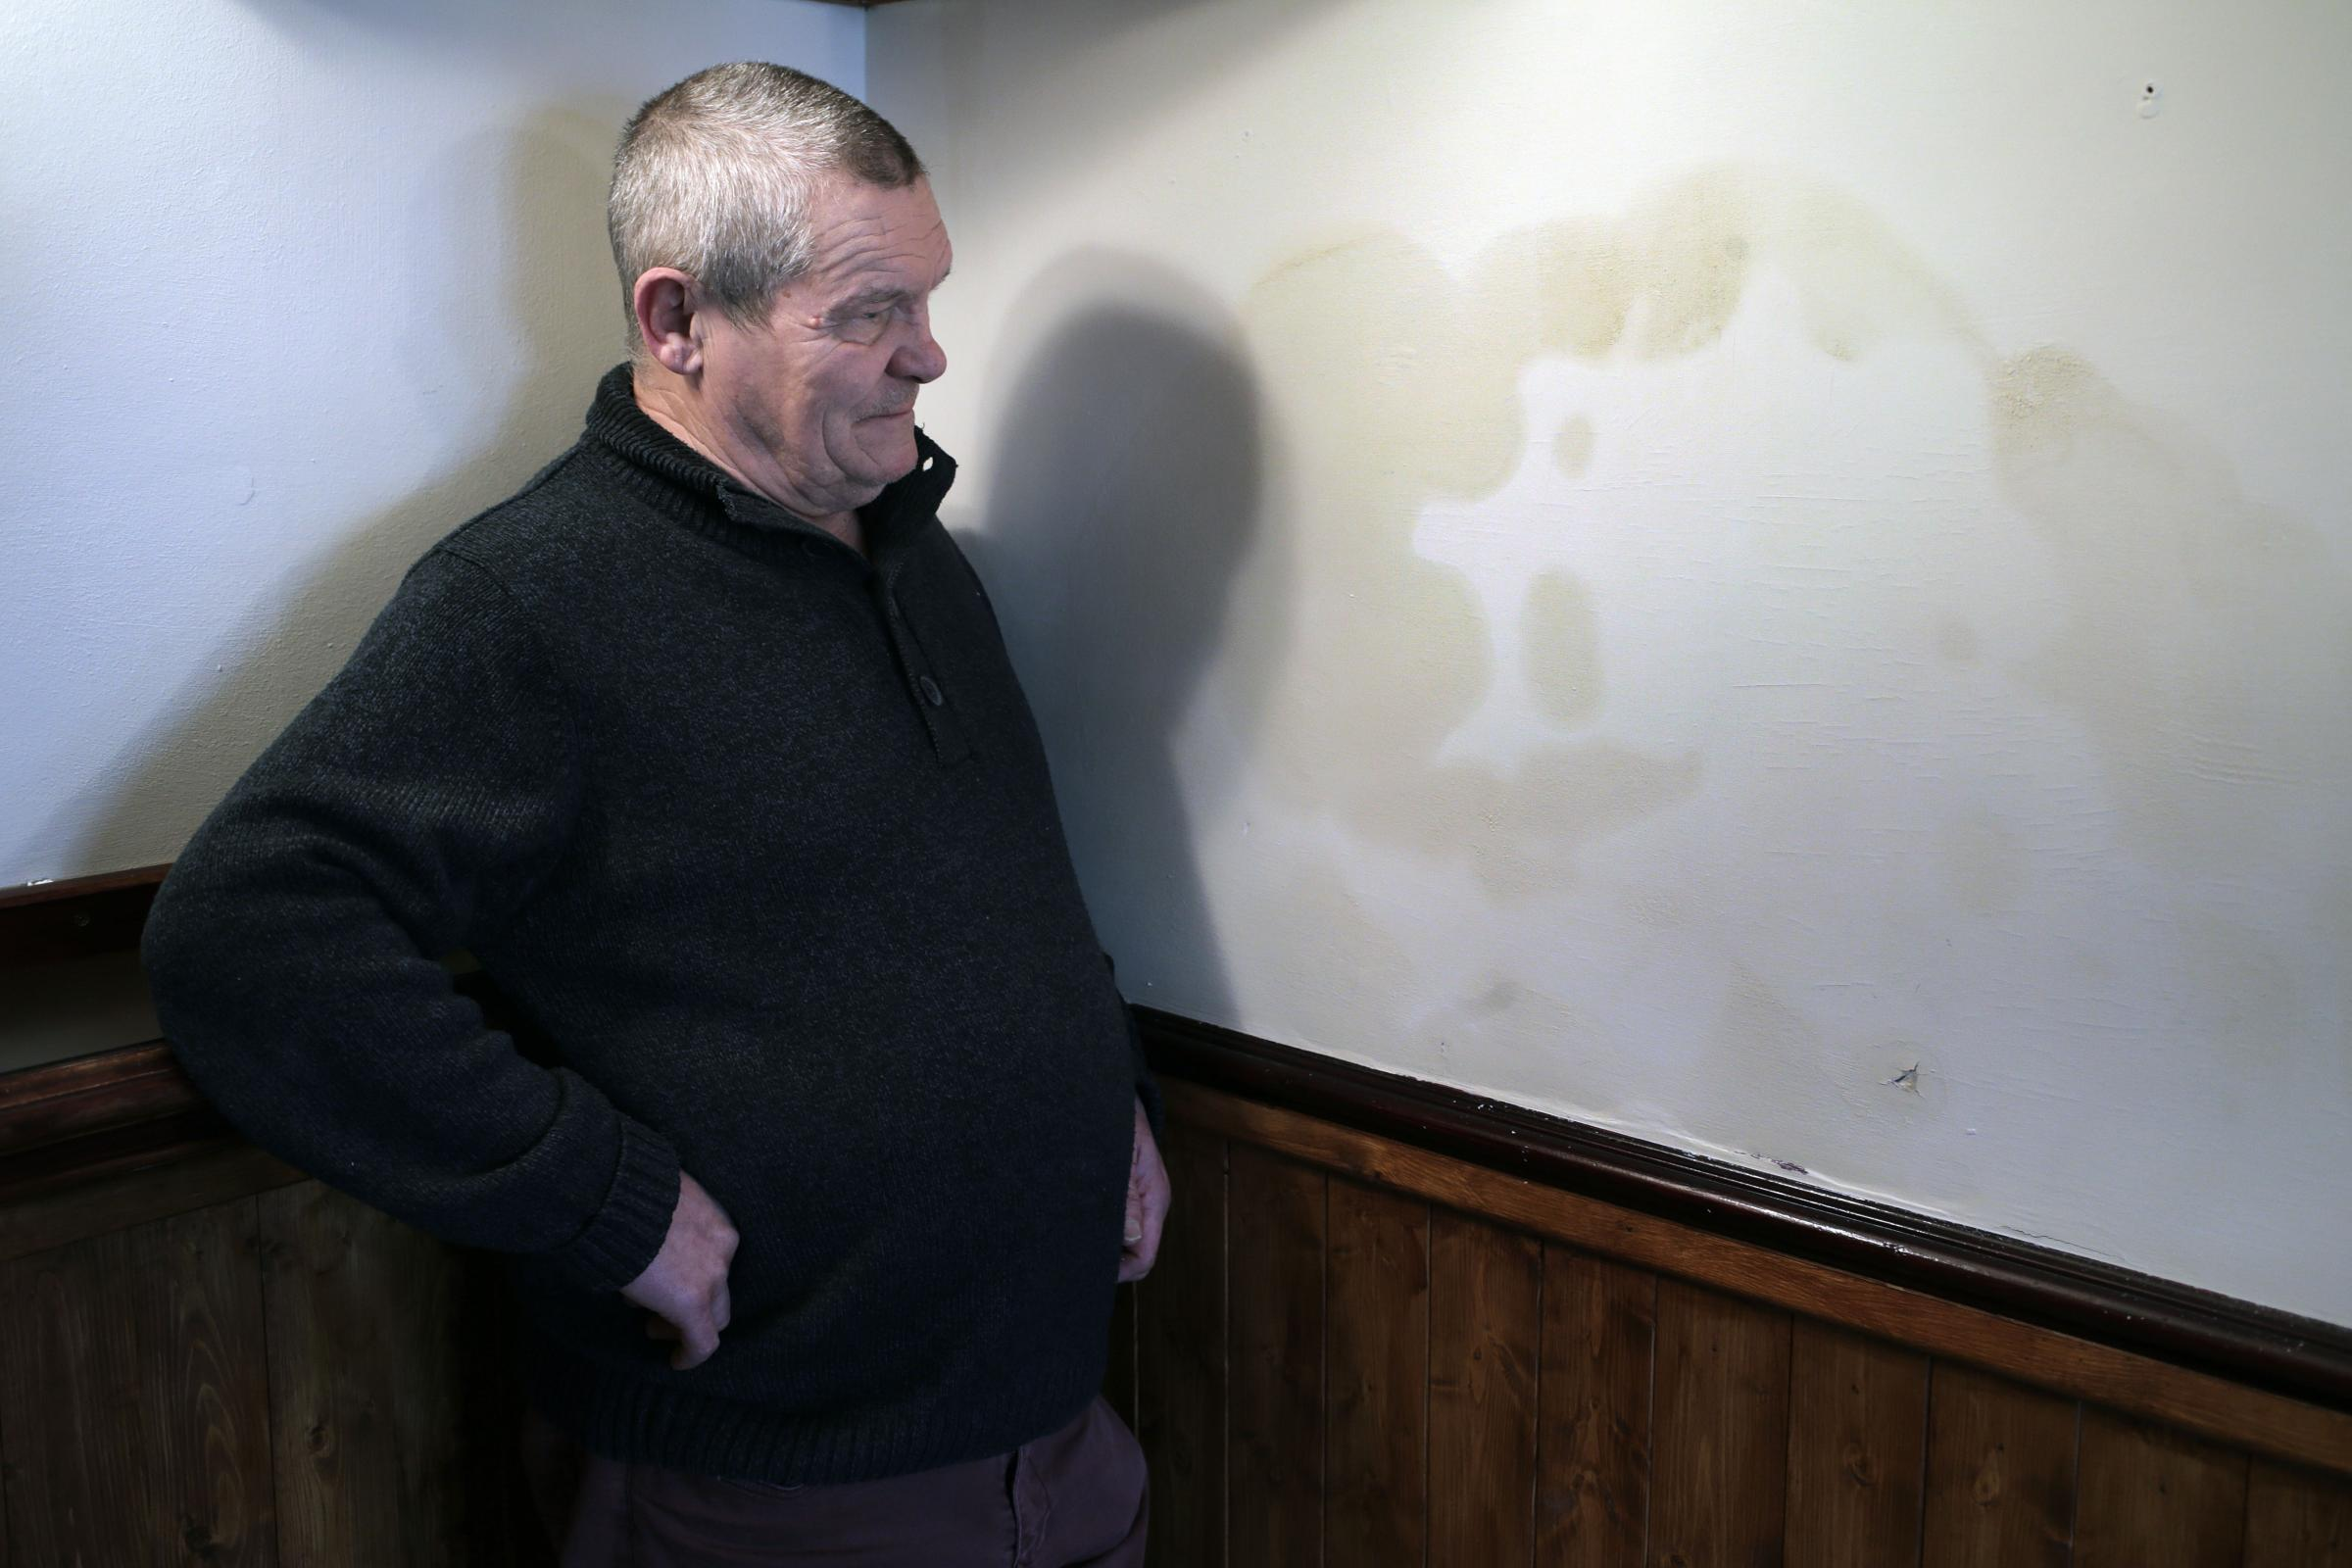 Devil's in the detail as pub landlord spots hellish figure on wall